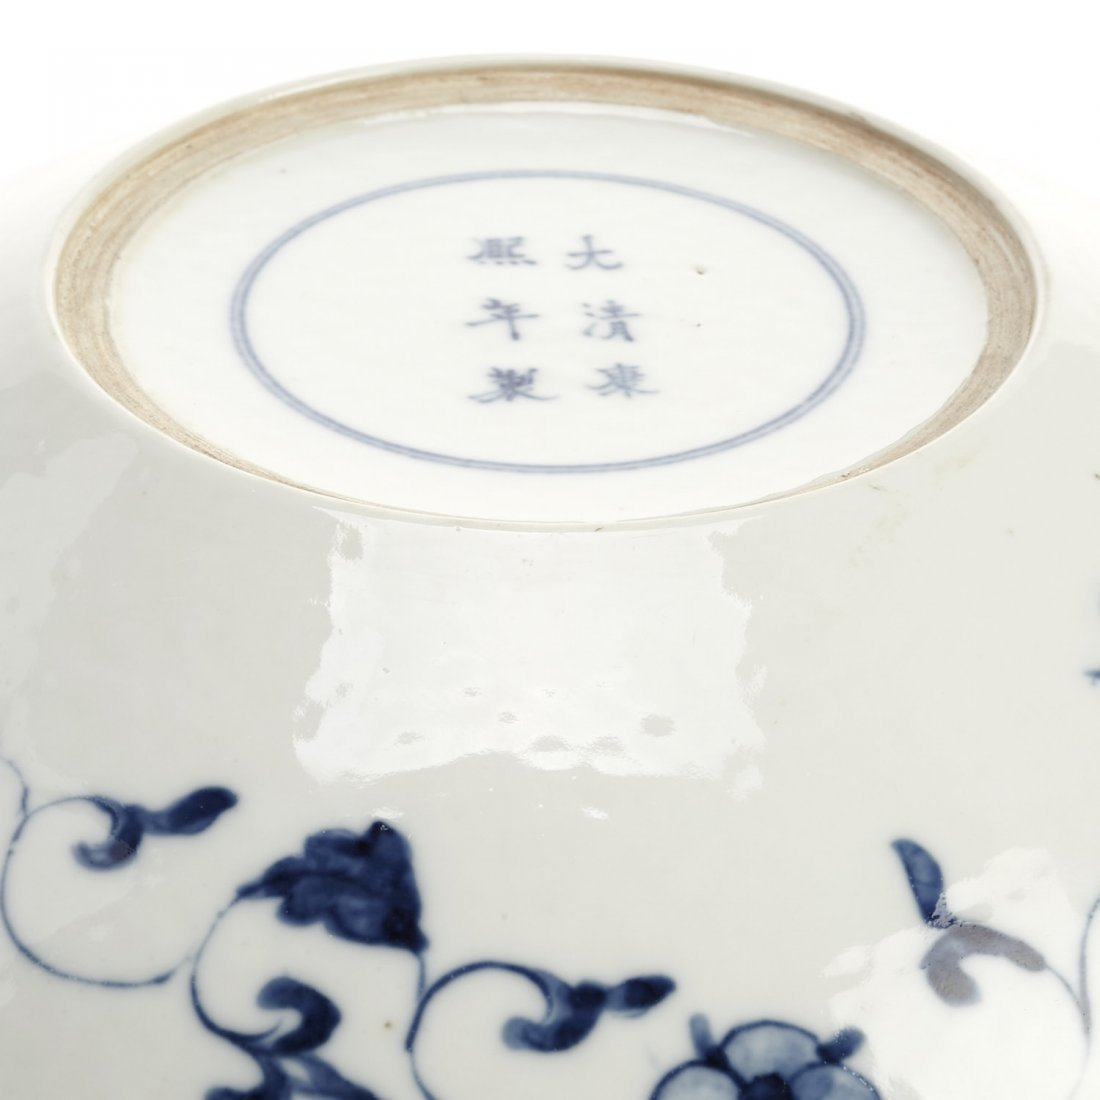 Chinese blue and white porcelain dragon dish - 5